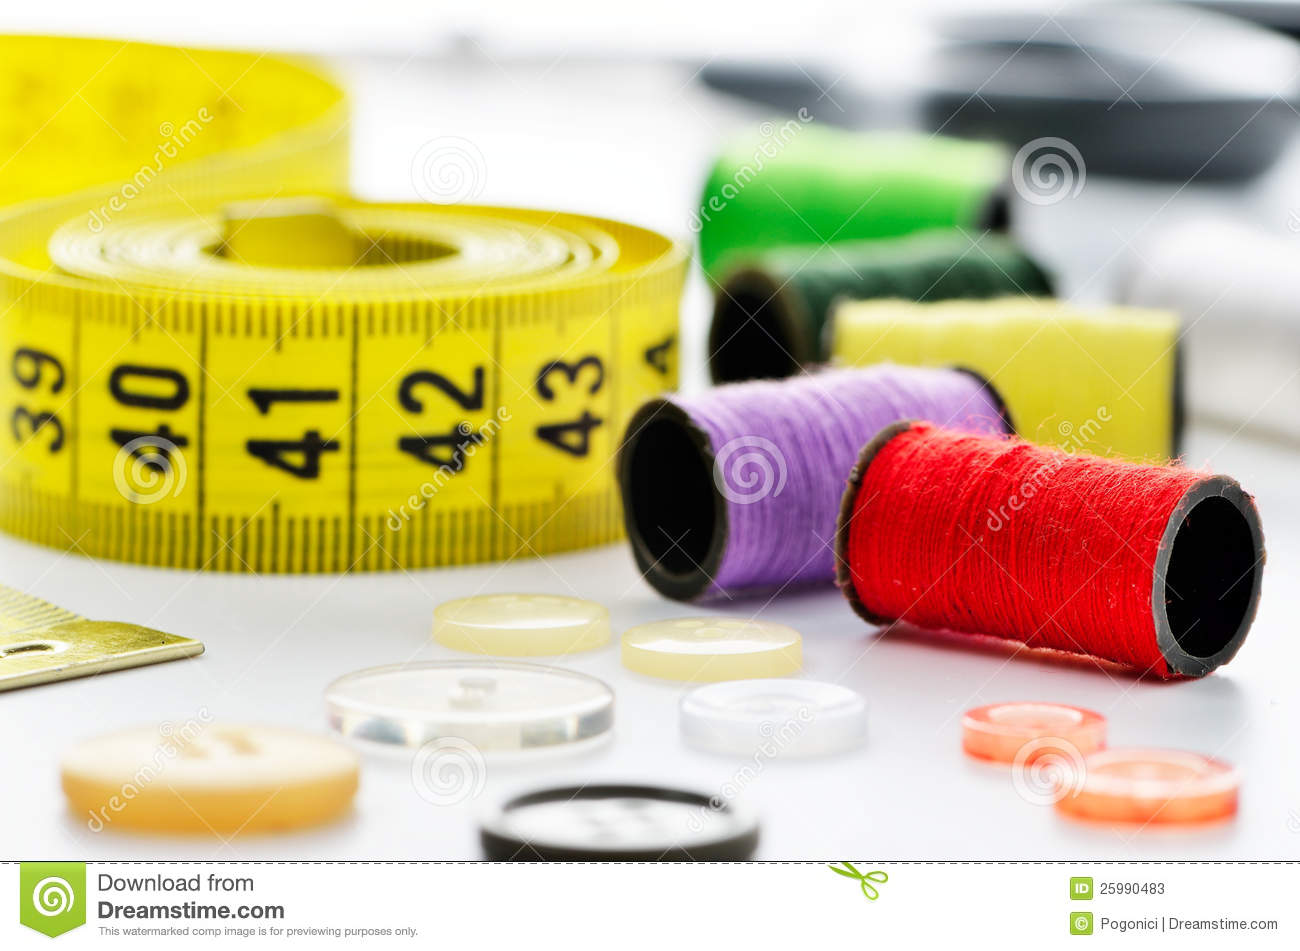 Dressmakers sewing materials stock photos image 25990483 for Sewing materials